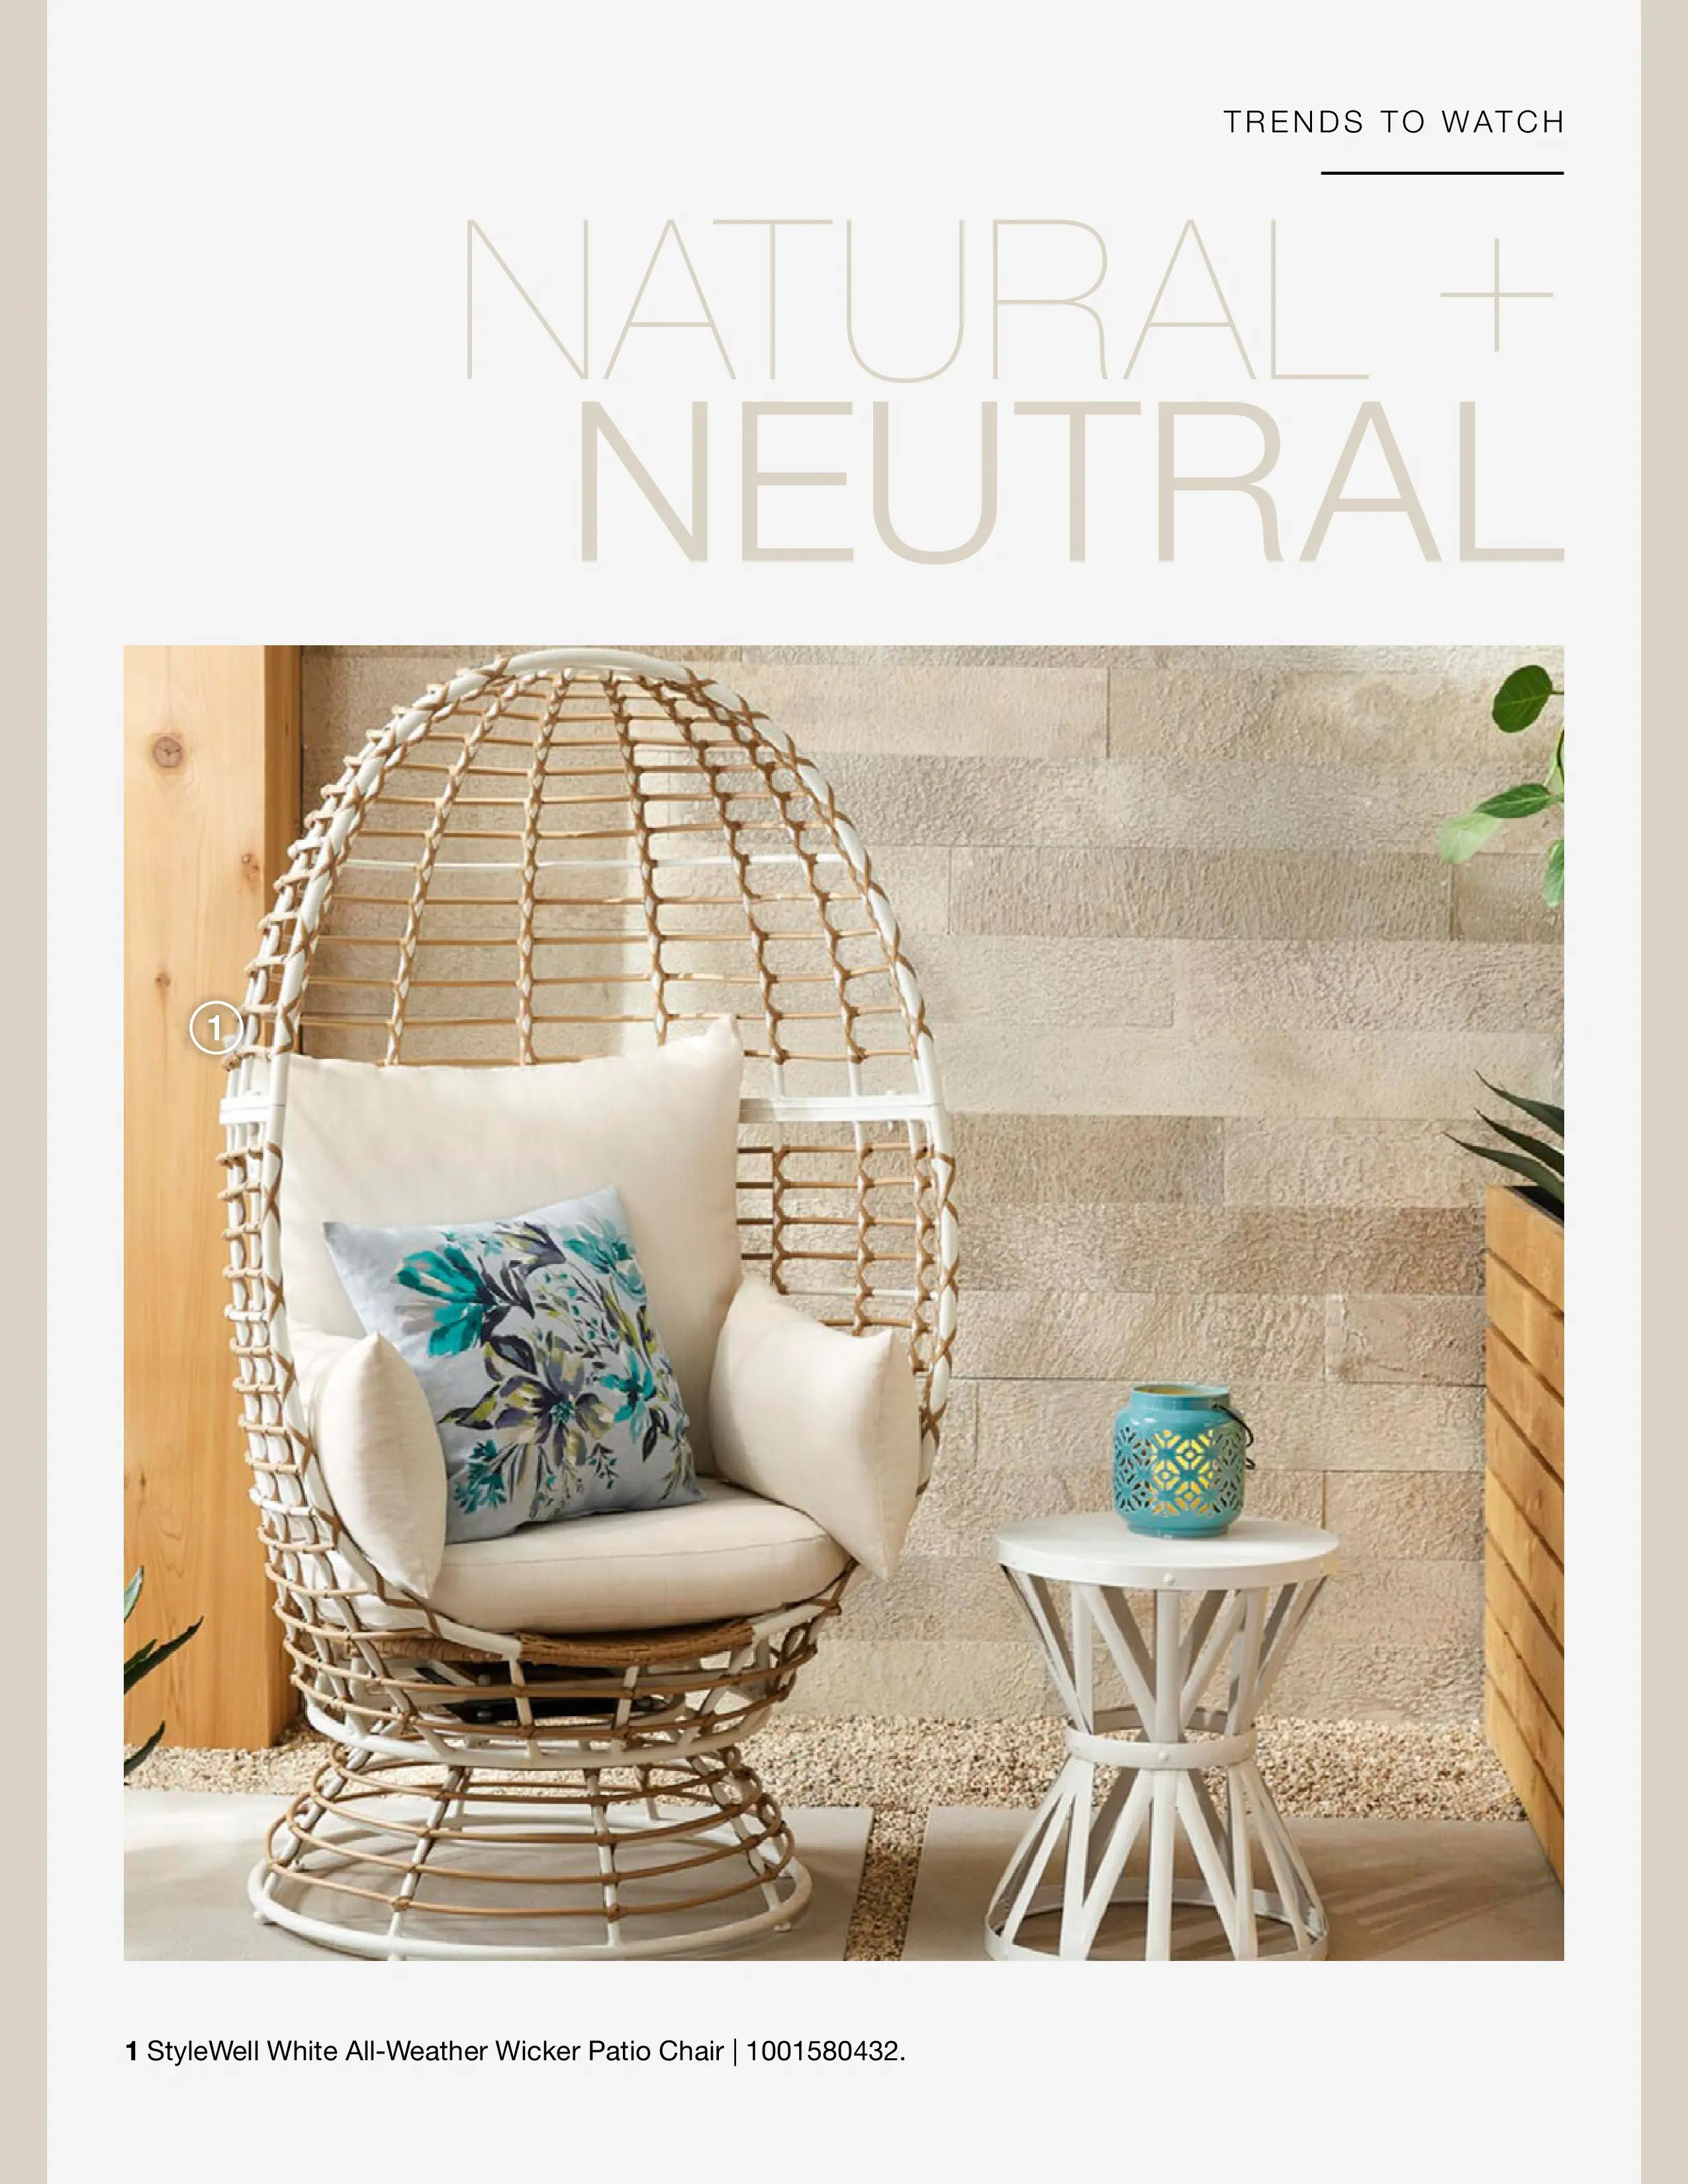 Home Depot - Outdoor Living - Page 24